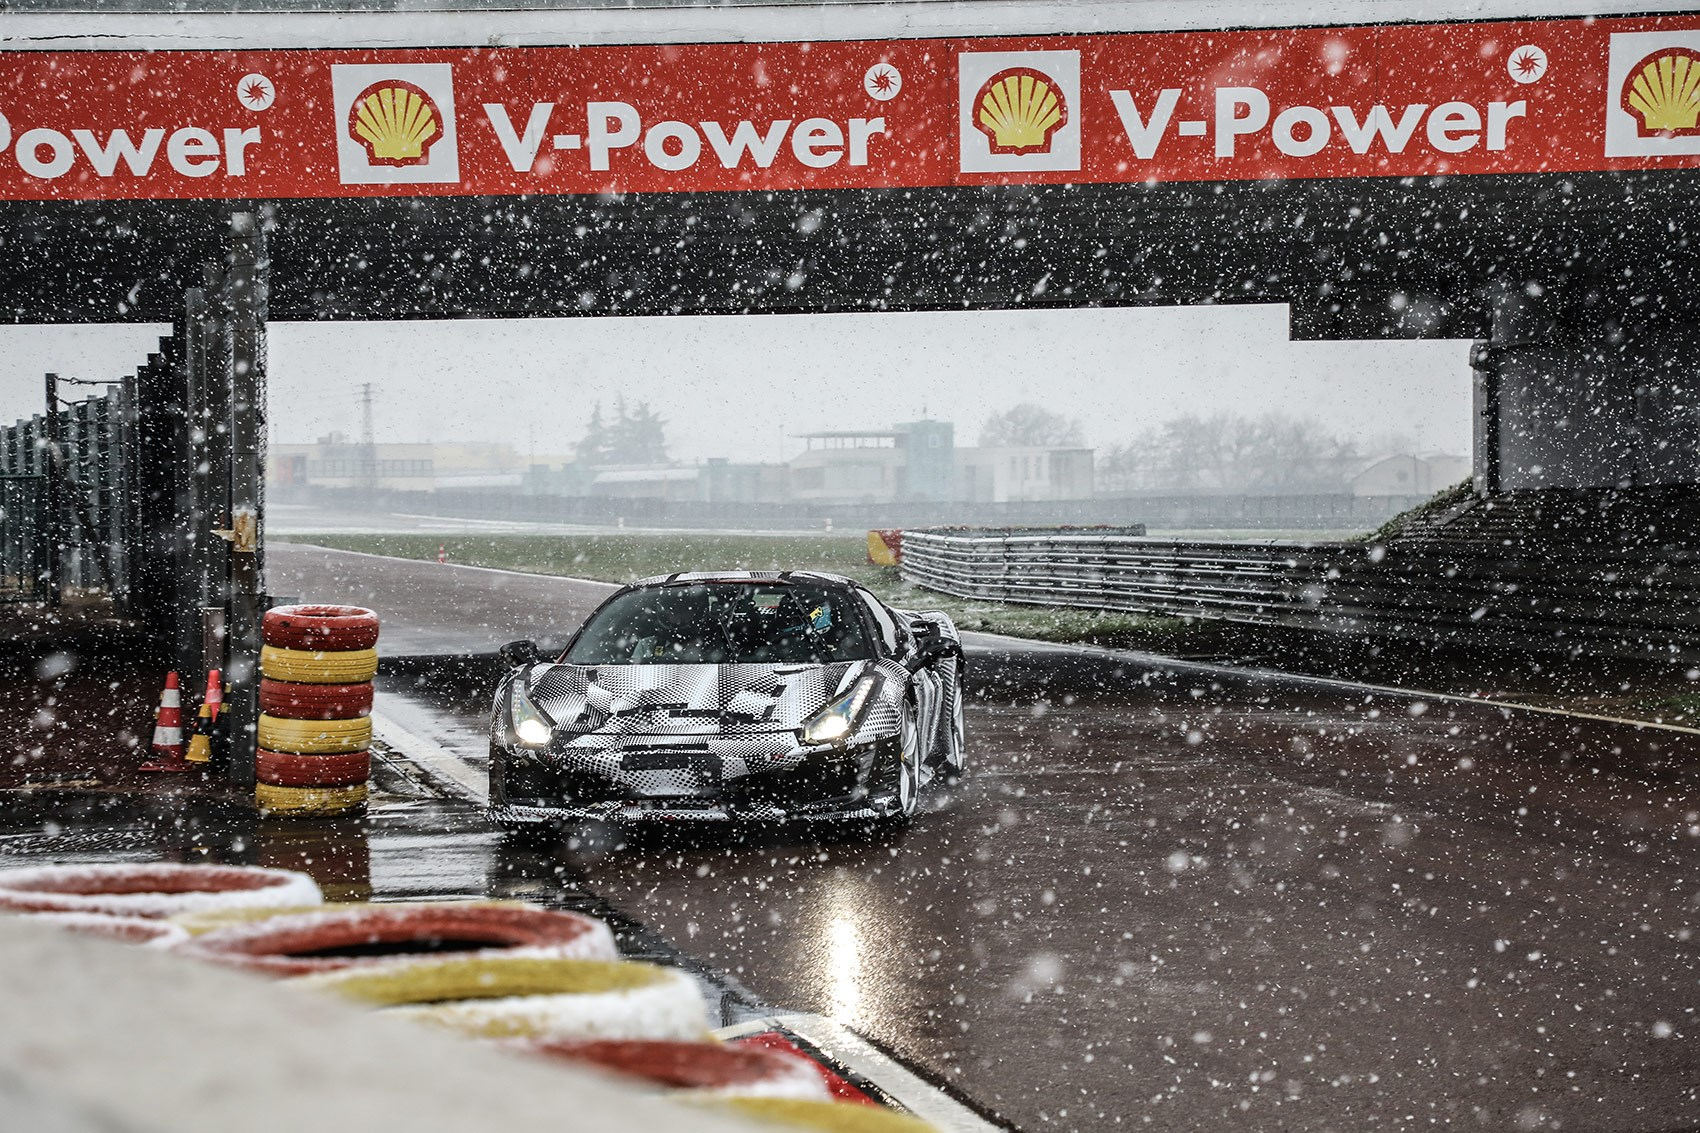 Fiorano was slippery when we drove the Ferrari 488 Pista